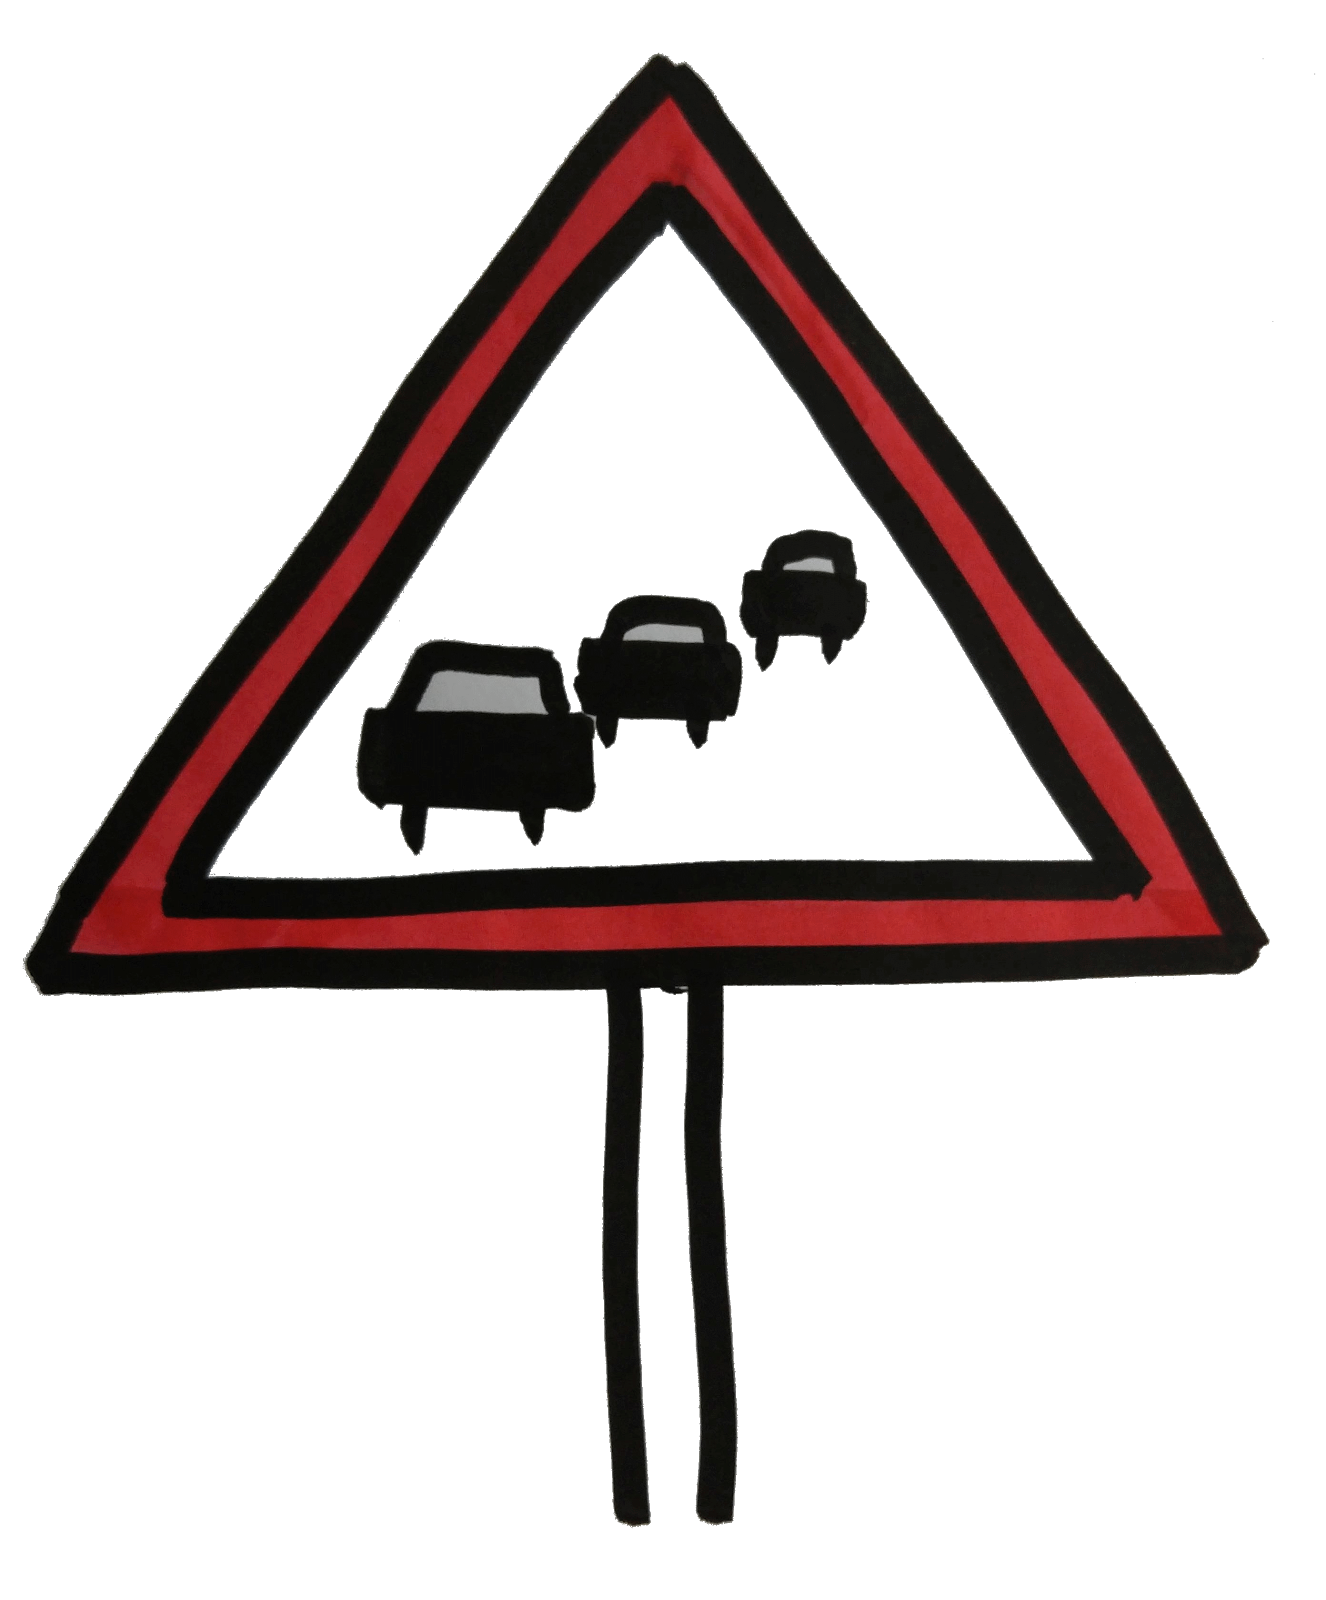 Traffic queueing sign